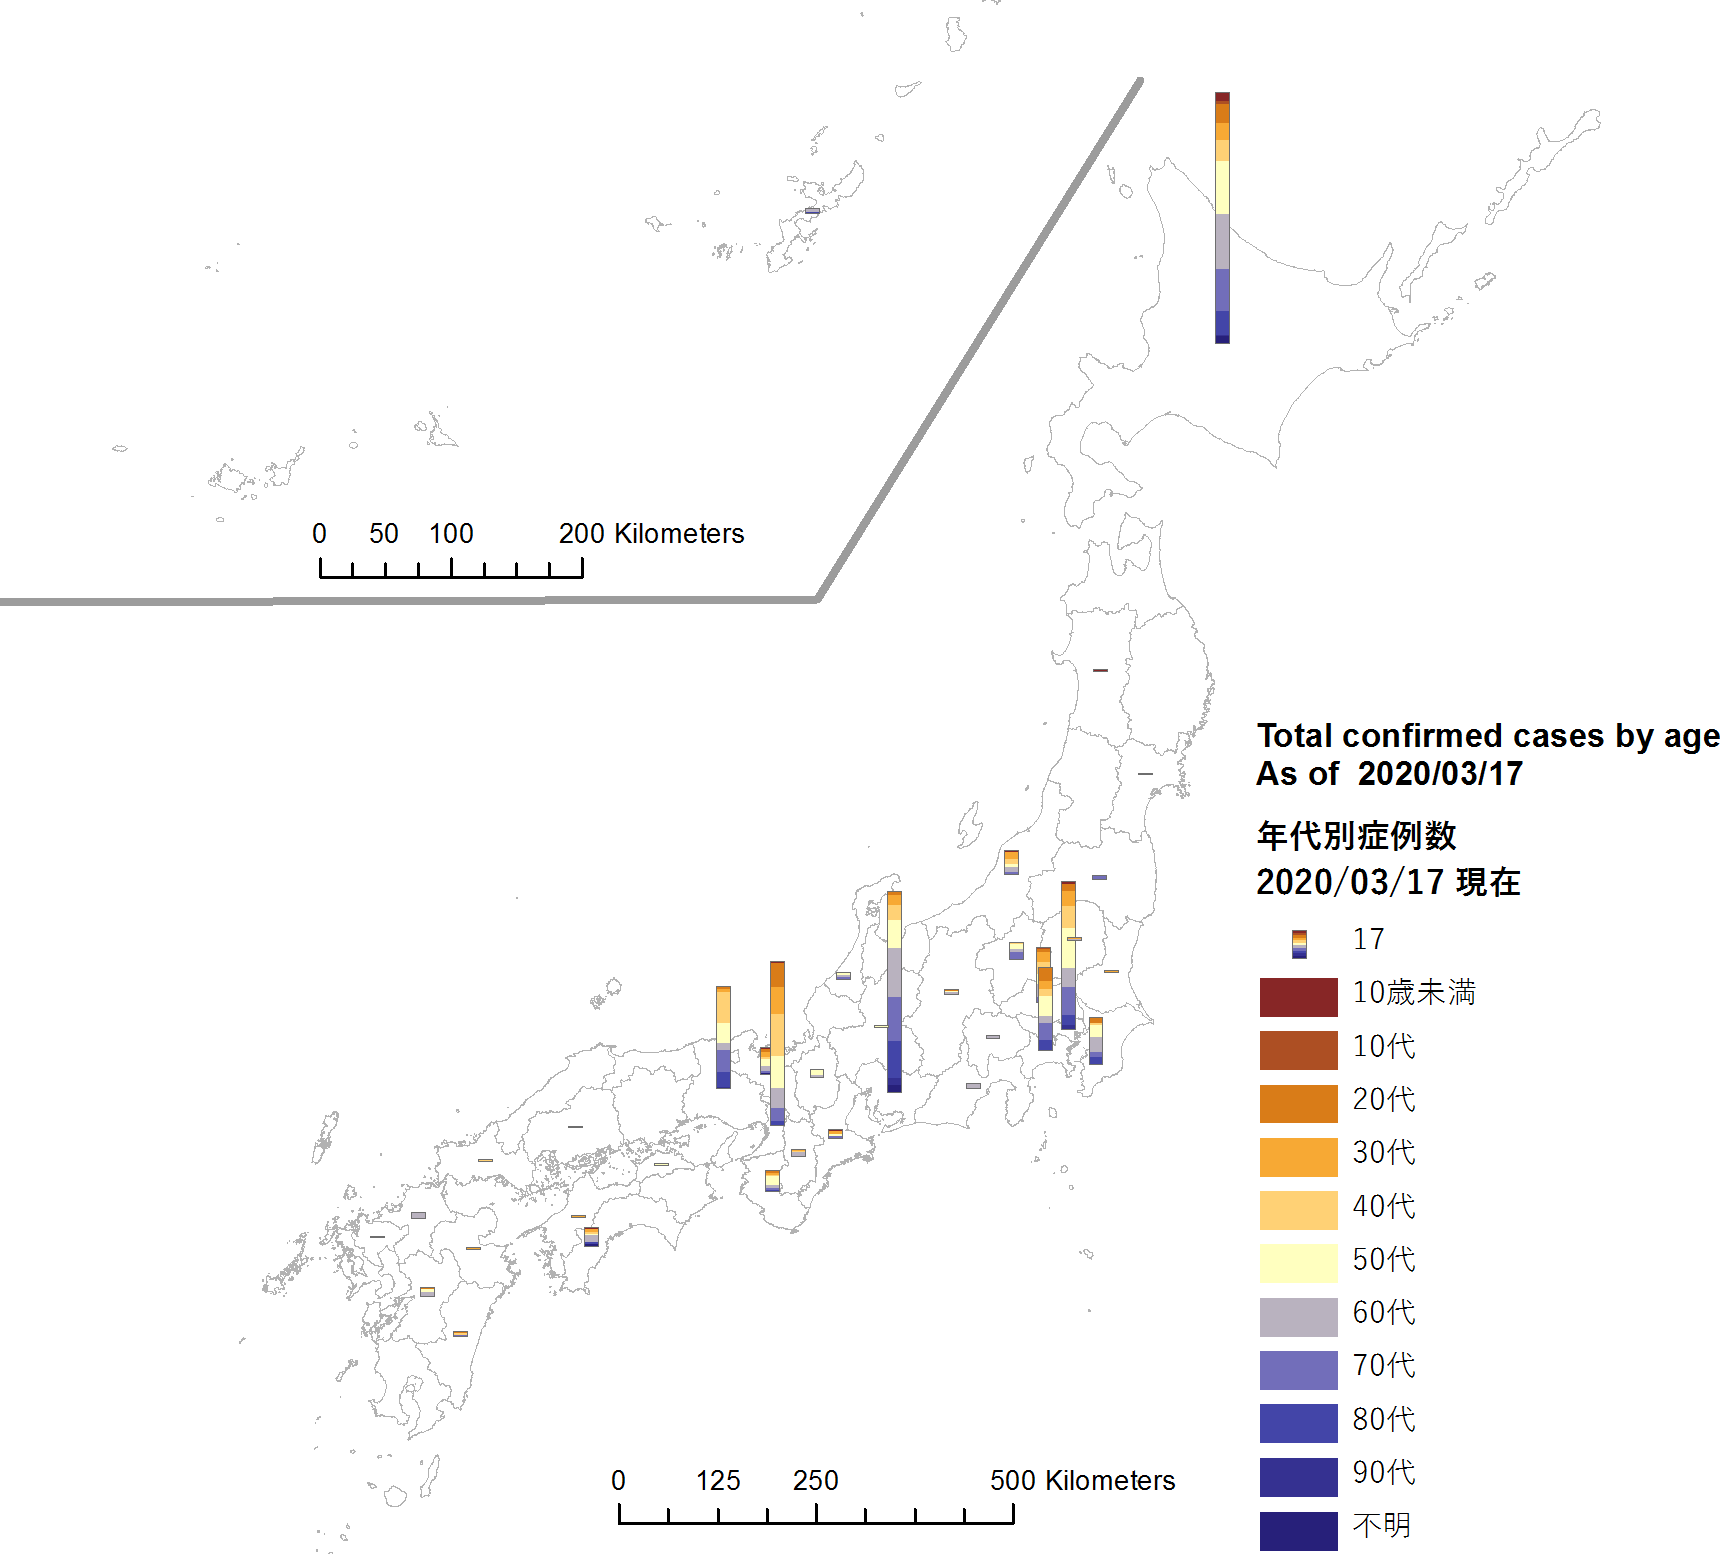 covid map by age 2020 03 17 @japan